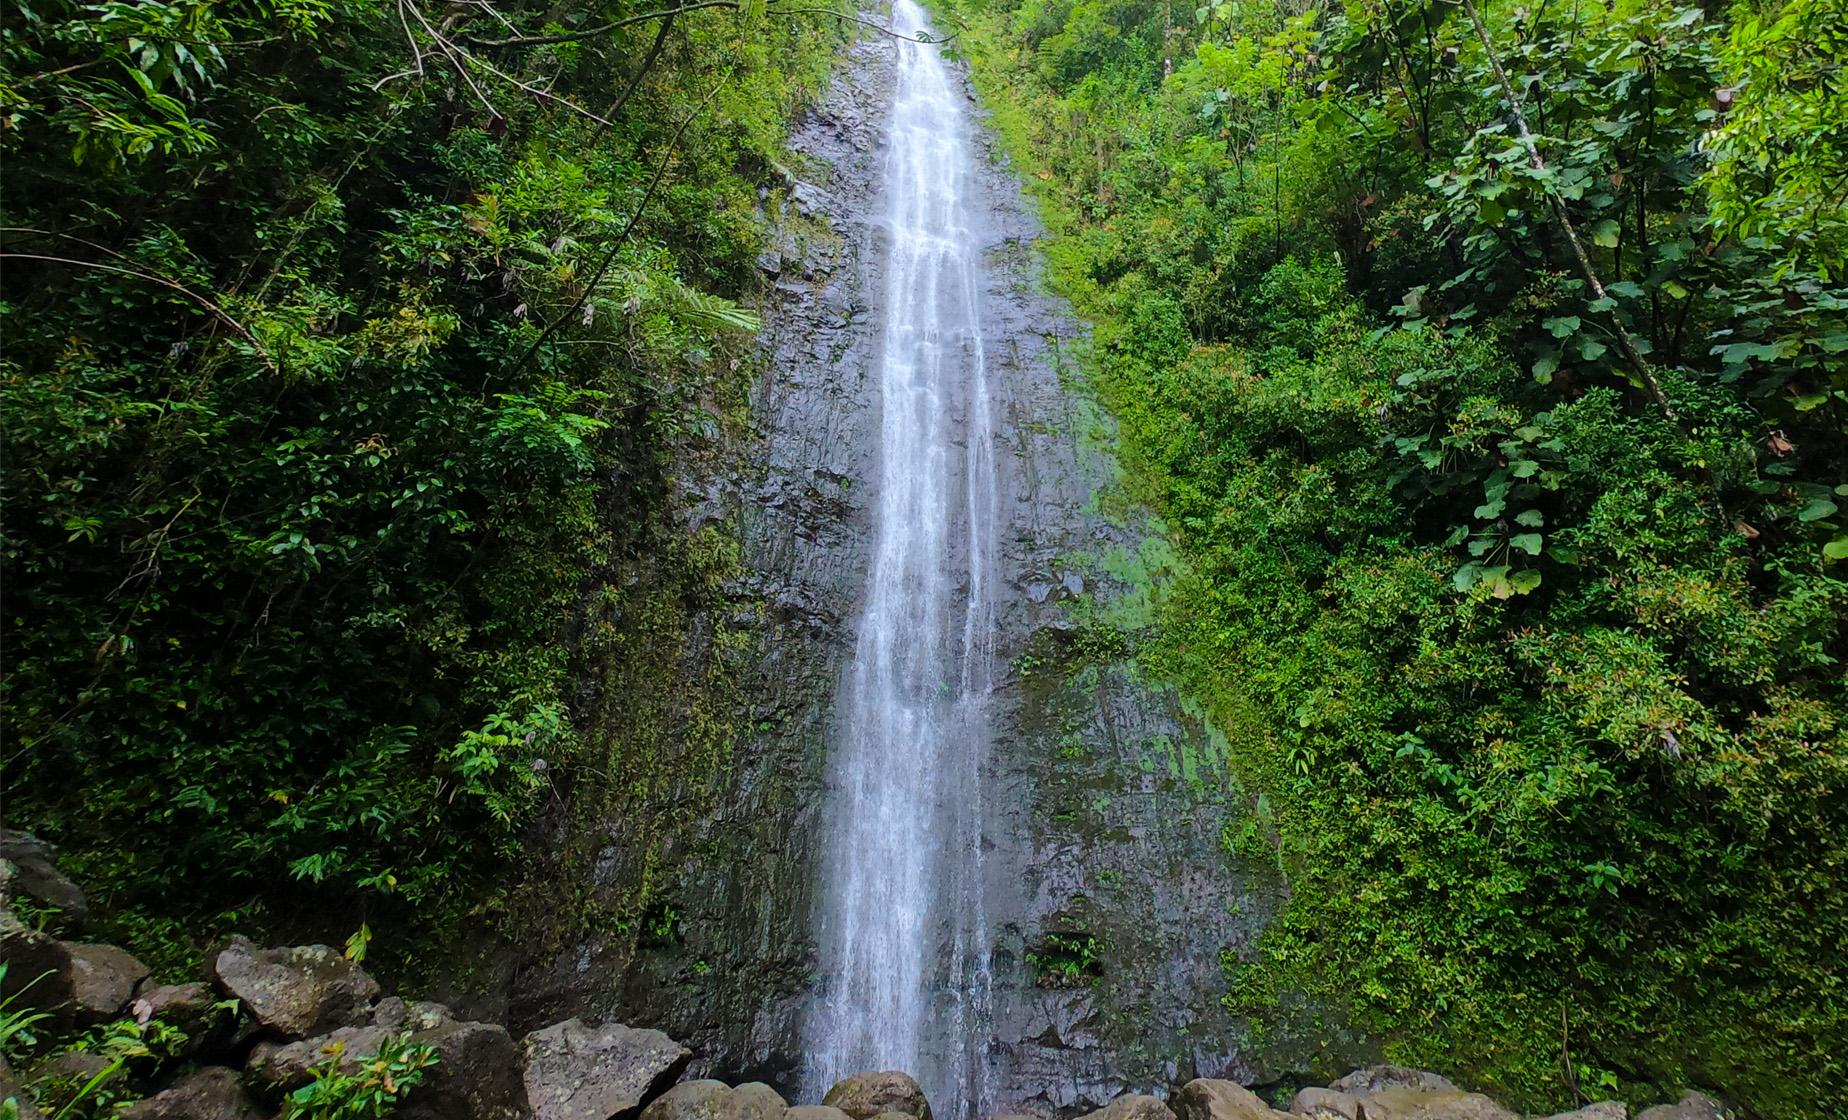 Exclusive Rainforest Hike Tour in Oahu (Manoa Valley Rainforest)